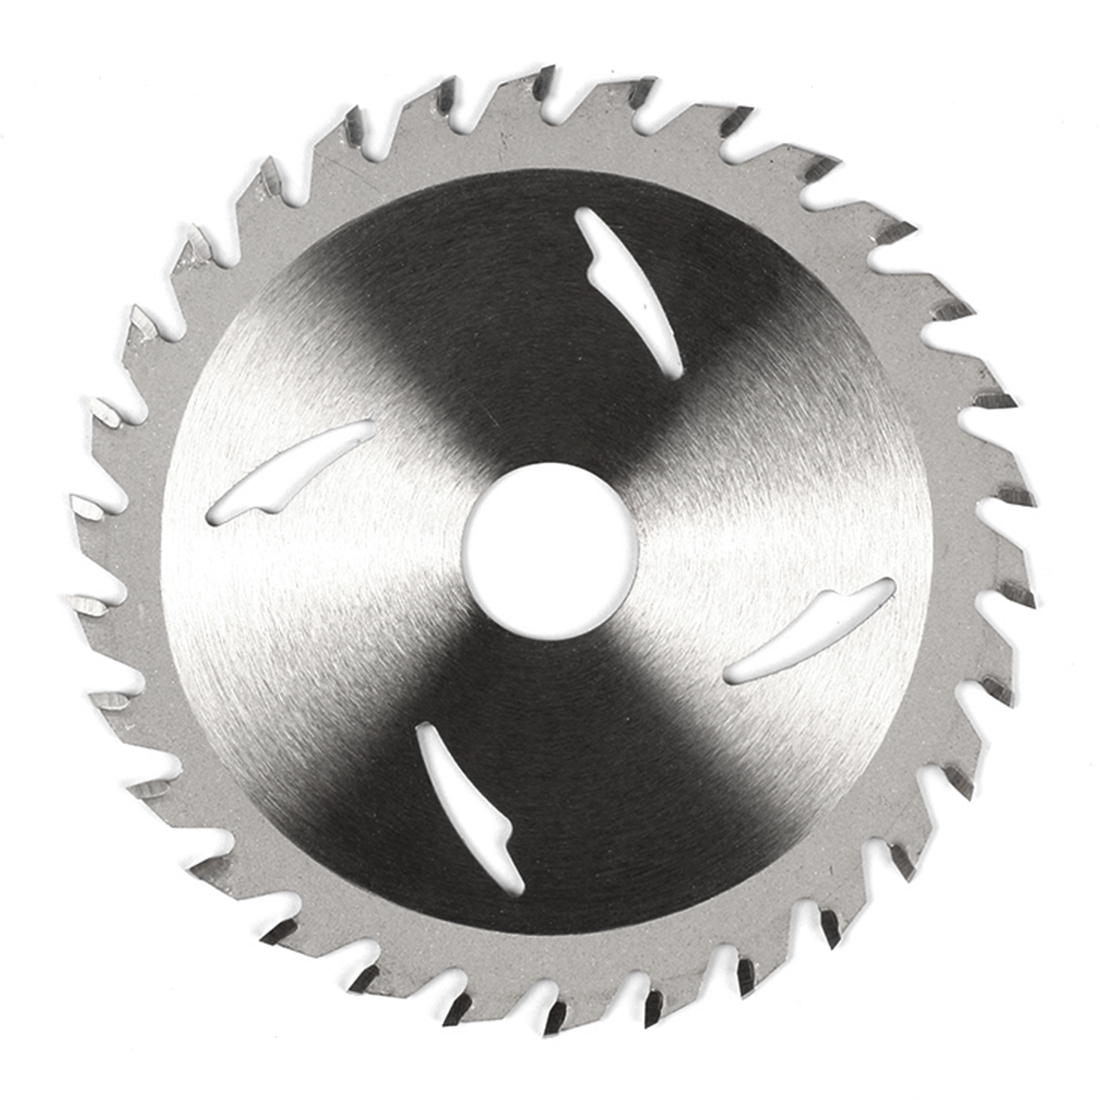 Carbide Tipped Wood Cutting Disc 1PC 125*22/20*30T/40T TCT Saw Blade For DIY&Decoration Eneral Wood Cutting